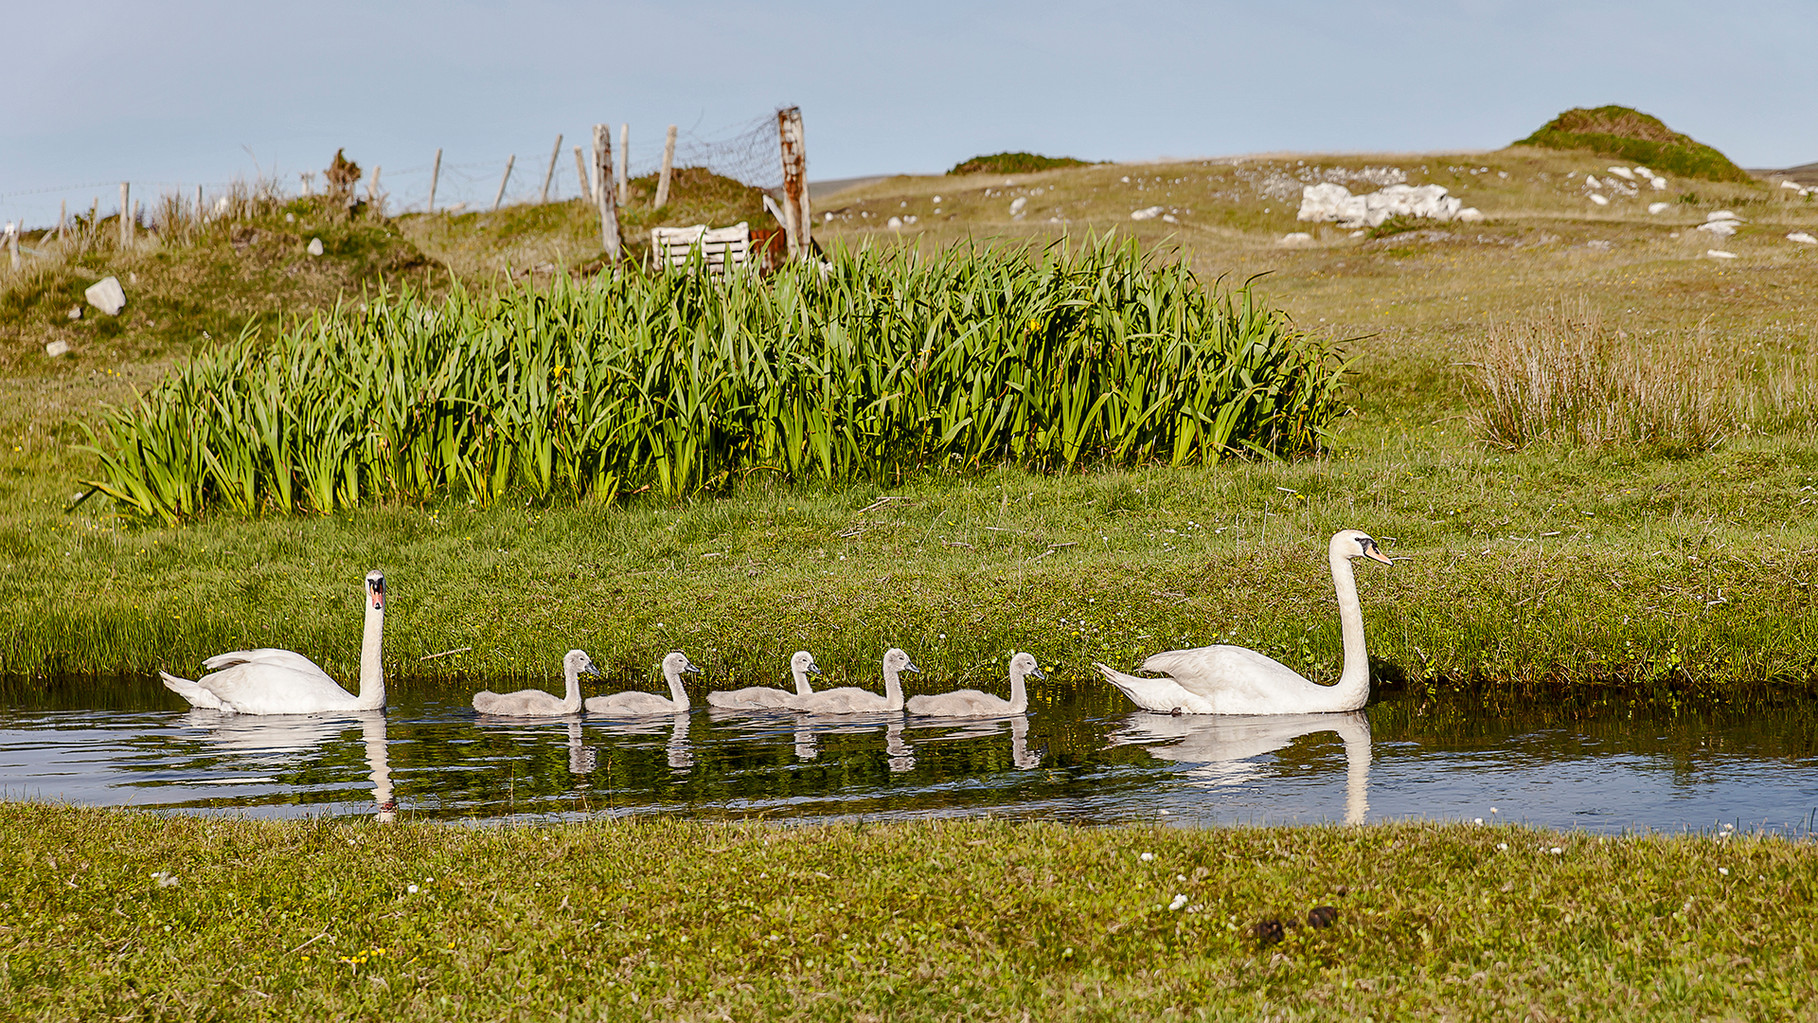 Family trip - A swan family on Achill Island, County Mayo